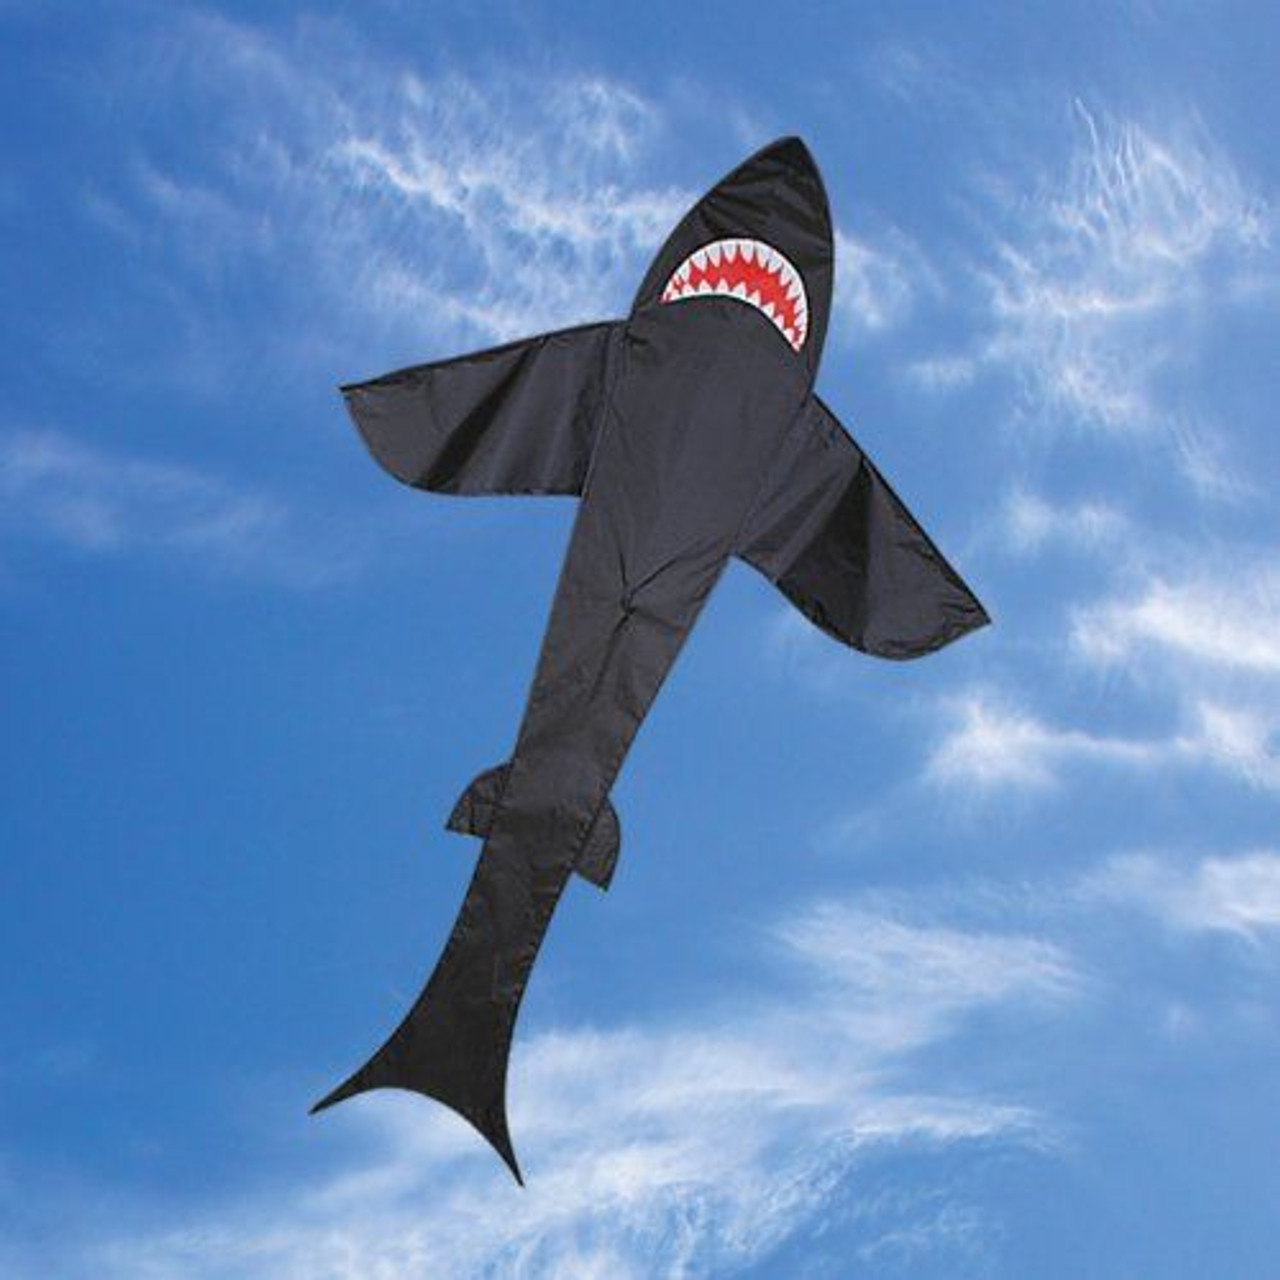 7ft. Black Shark Kite